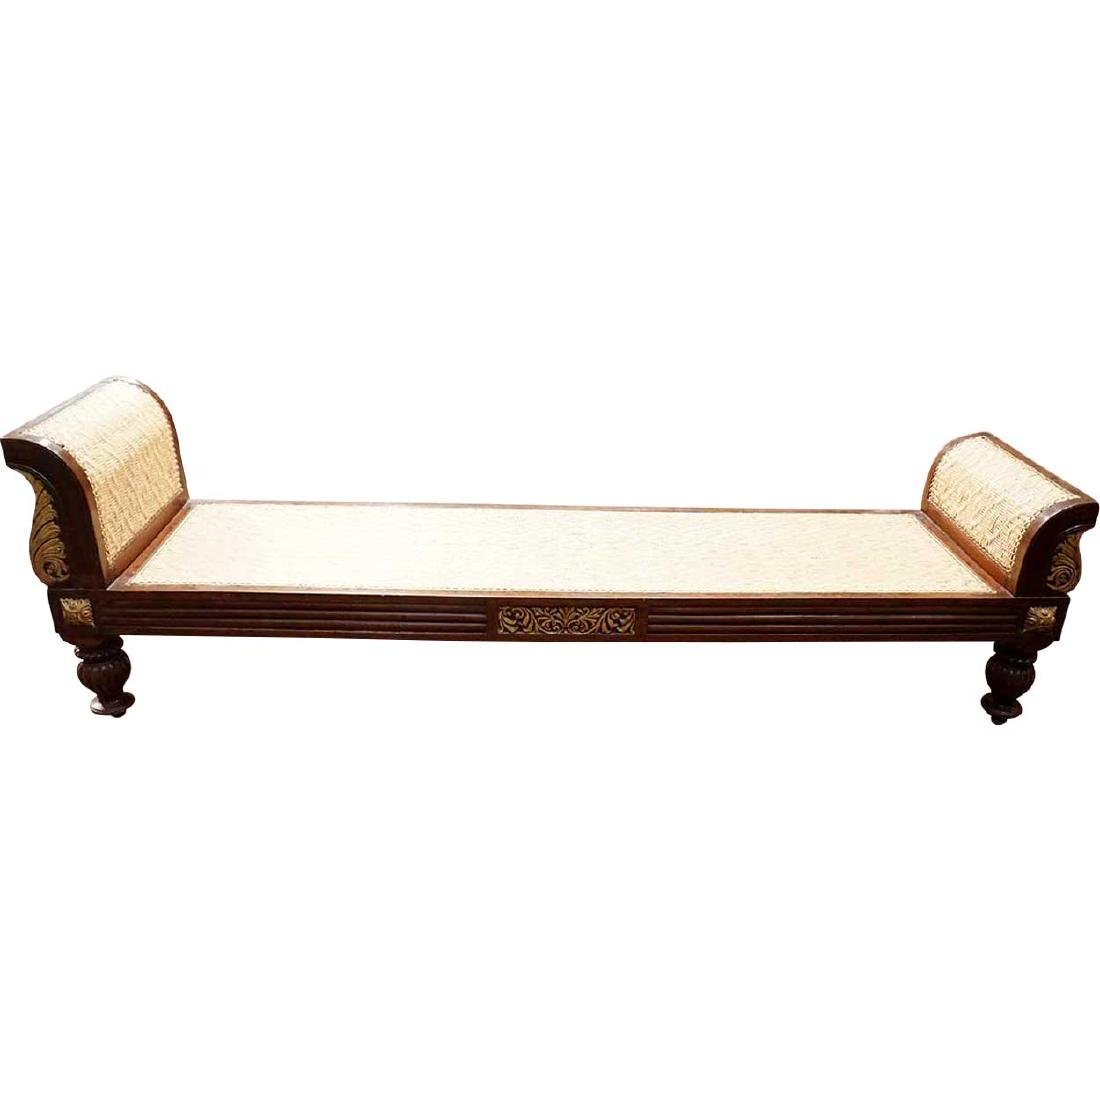 Anglo Indian Neoclassical Caned Rosewood Daybed Bench